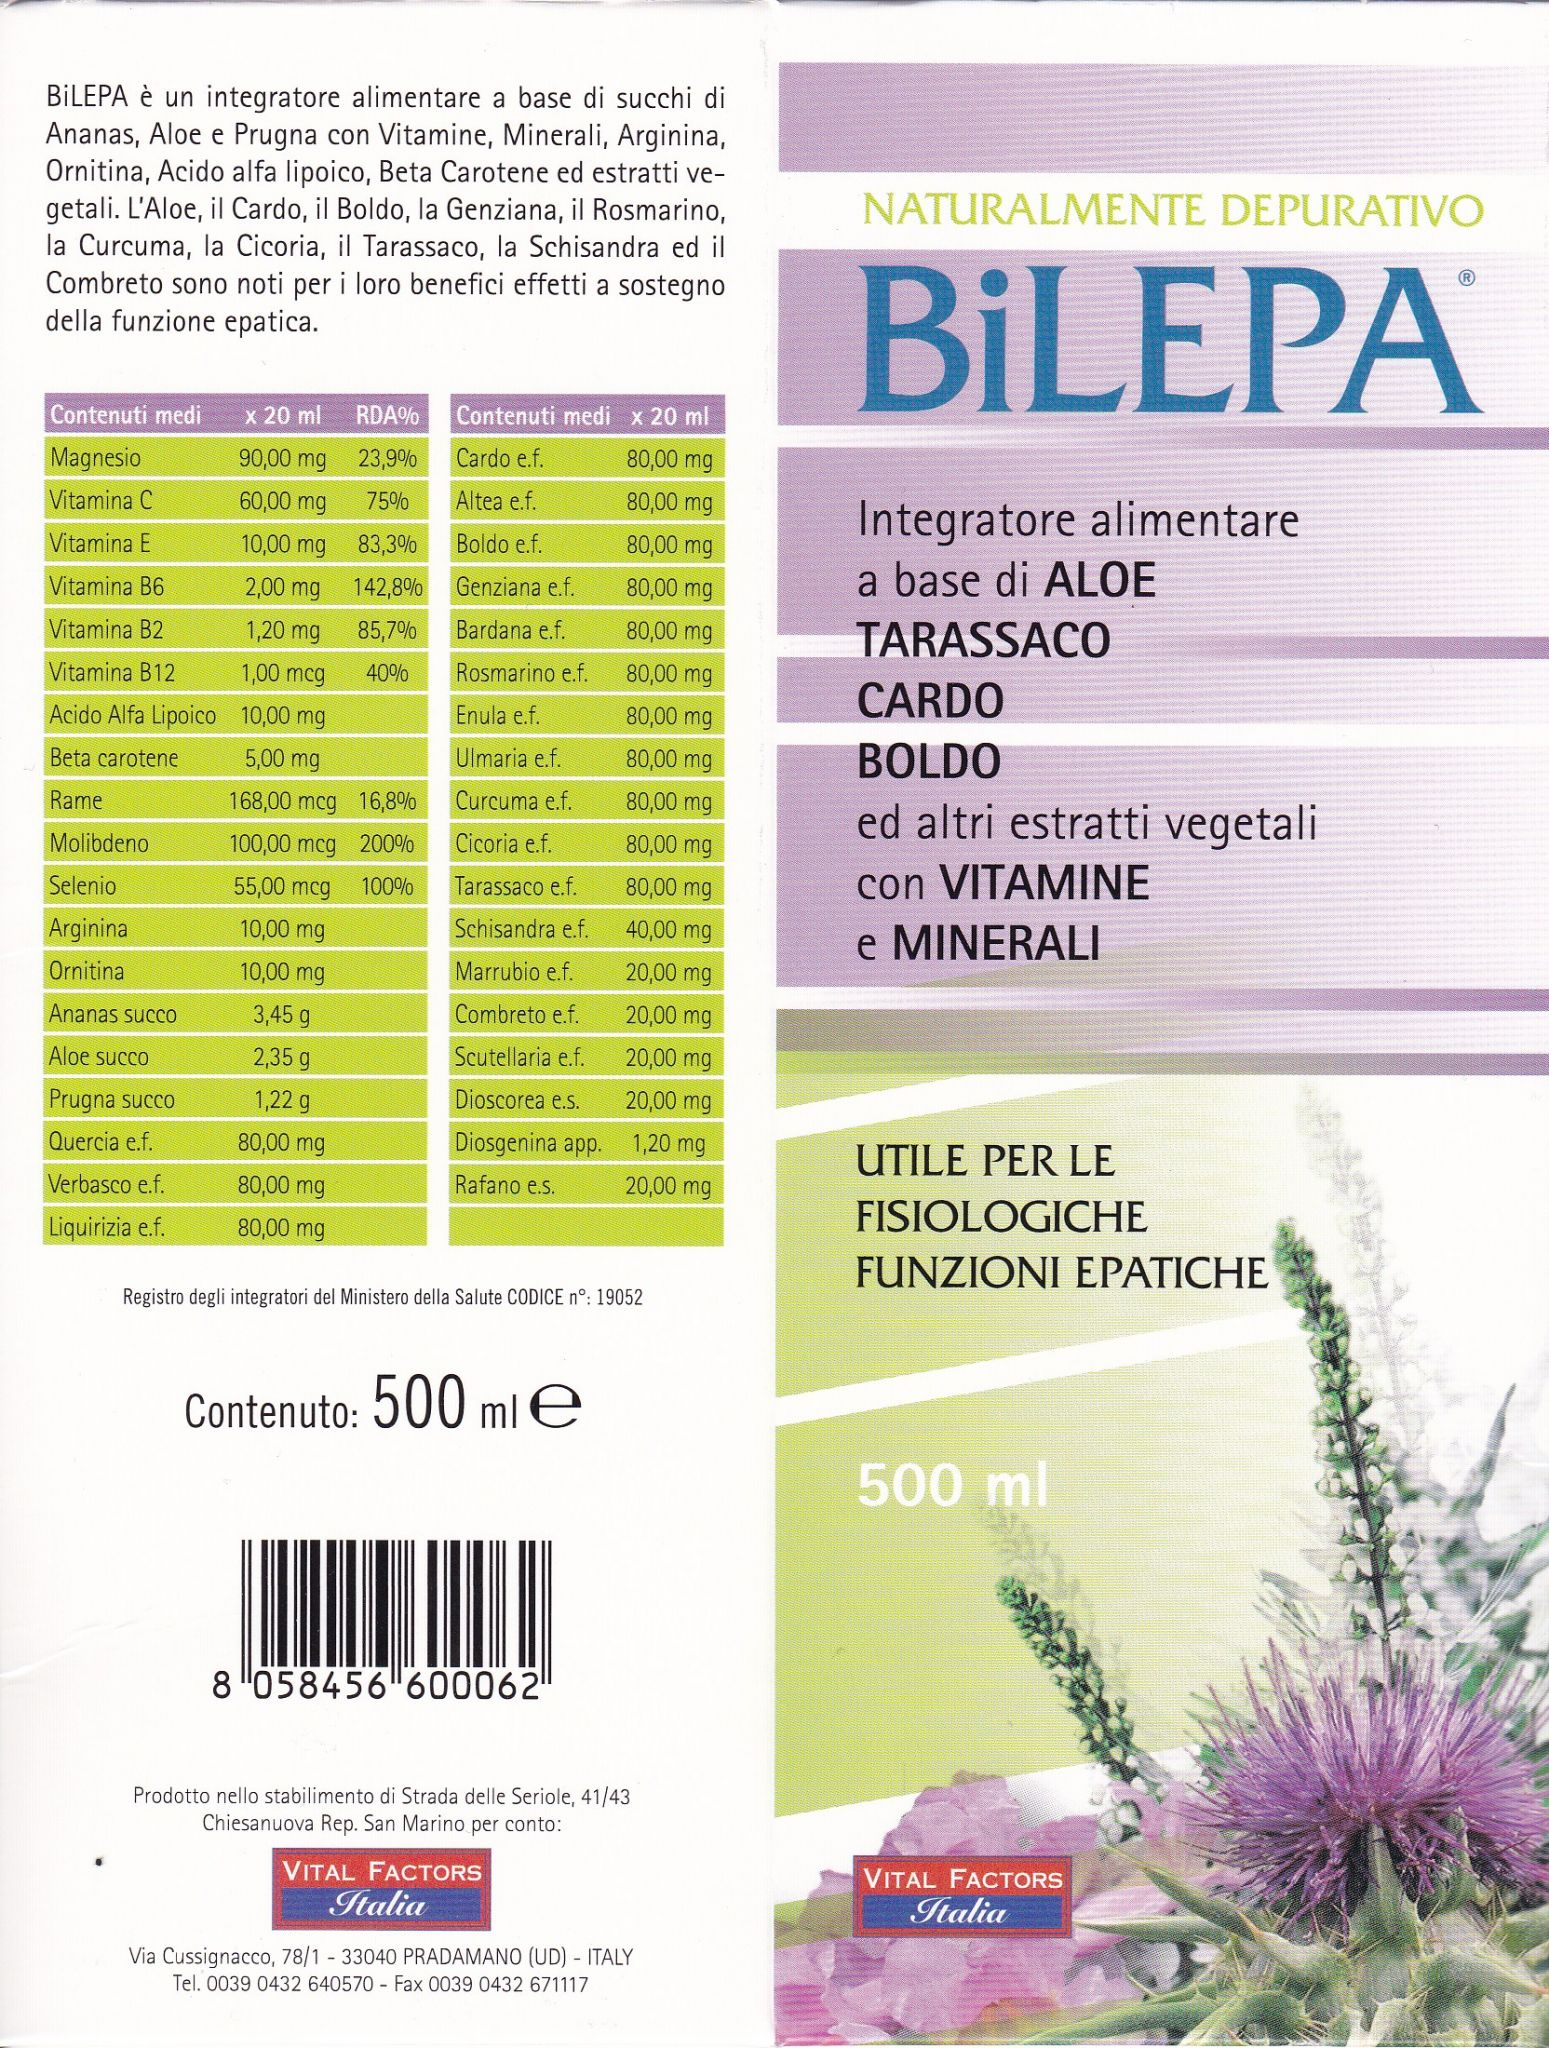 VITAL FACTORS BILEPA Depurativo 500 ml